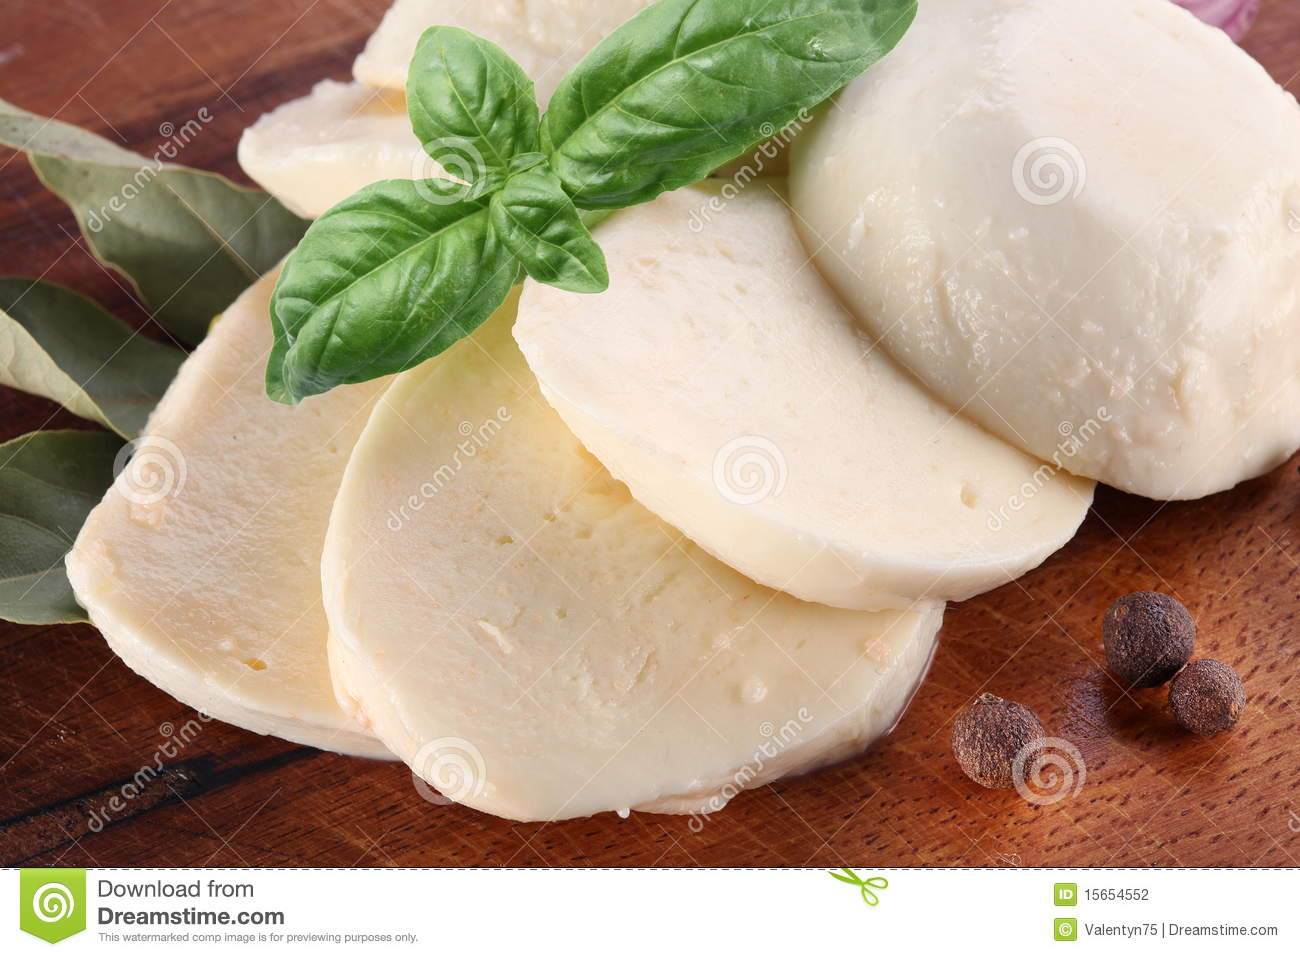 Mozzarella cheese clipart.